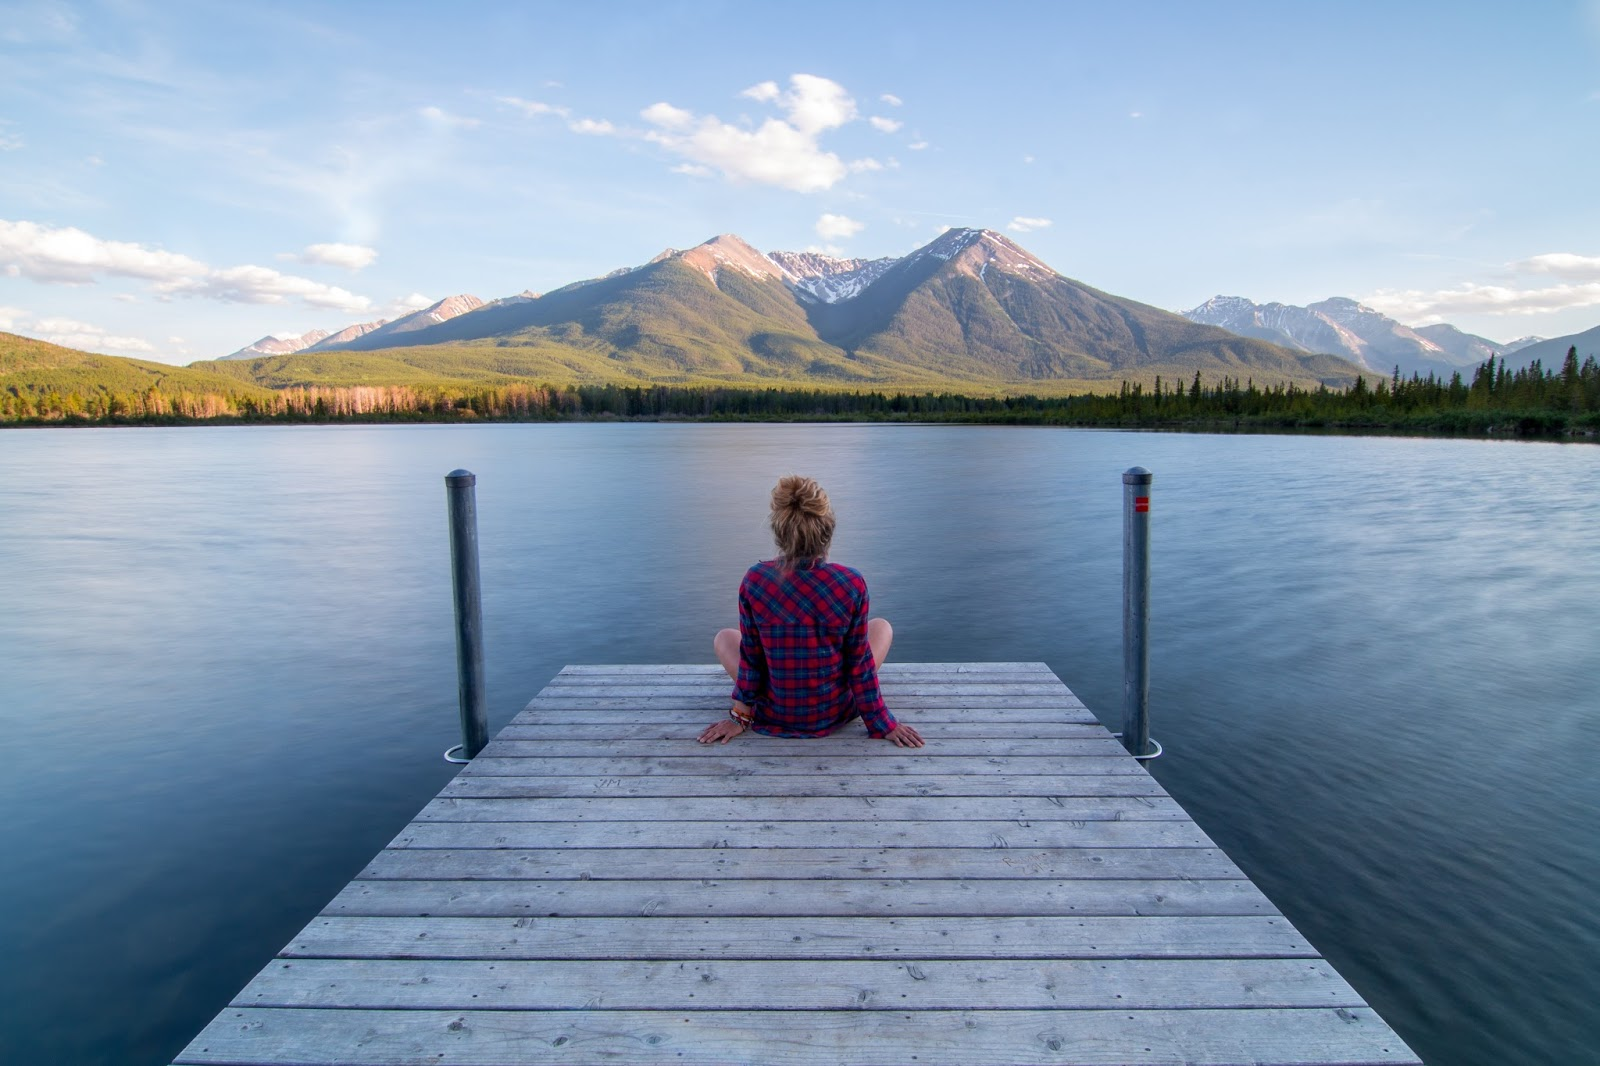 Woman on a jetty looking over a lake and mountains. 52 is a great time to think about how to find meaning and purpose in later life.